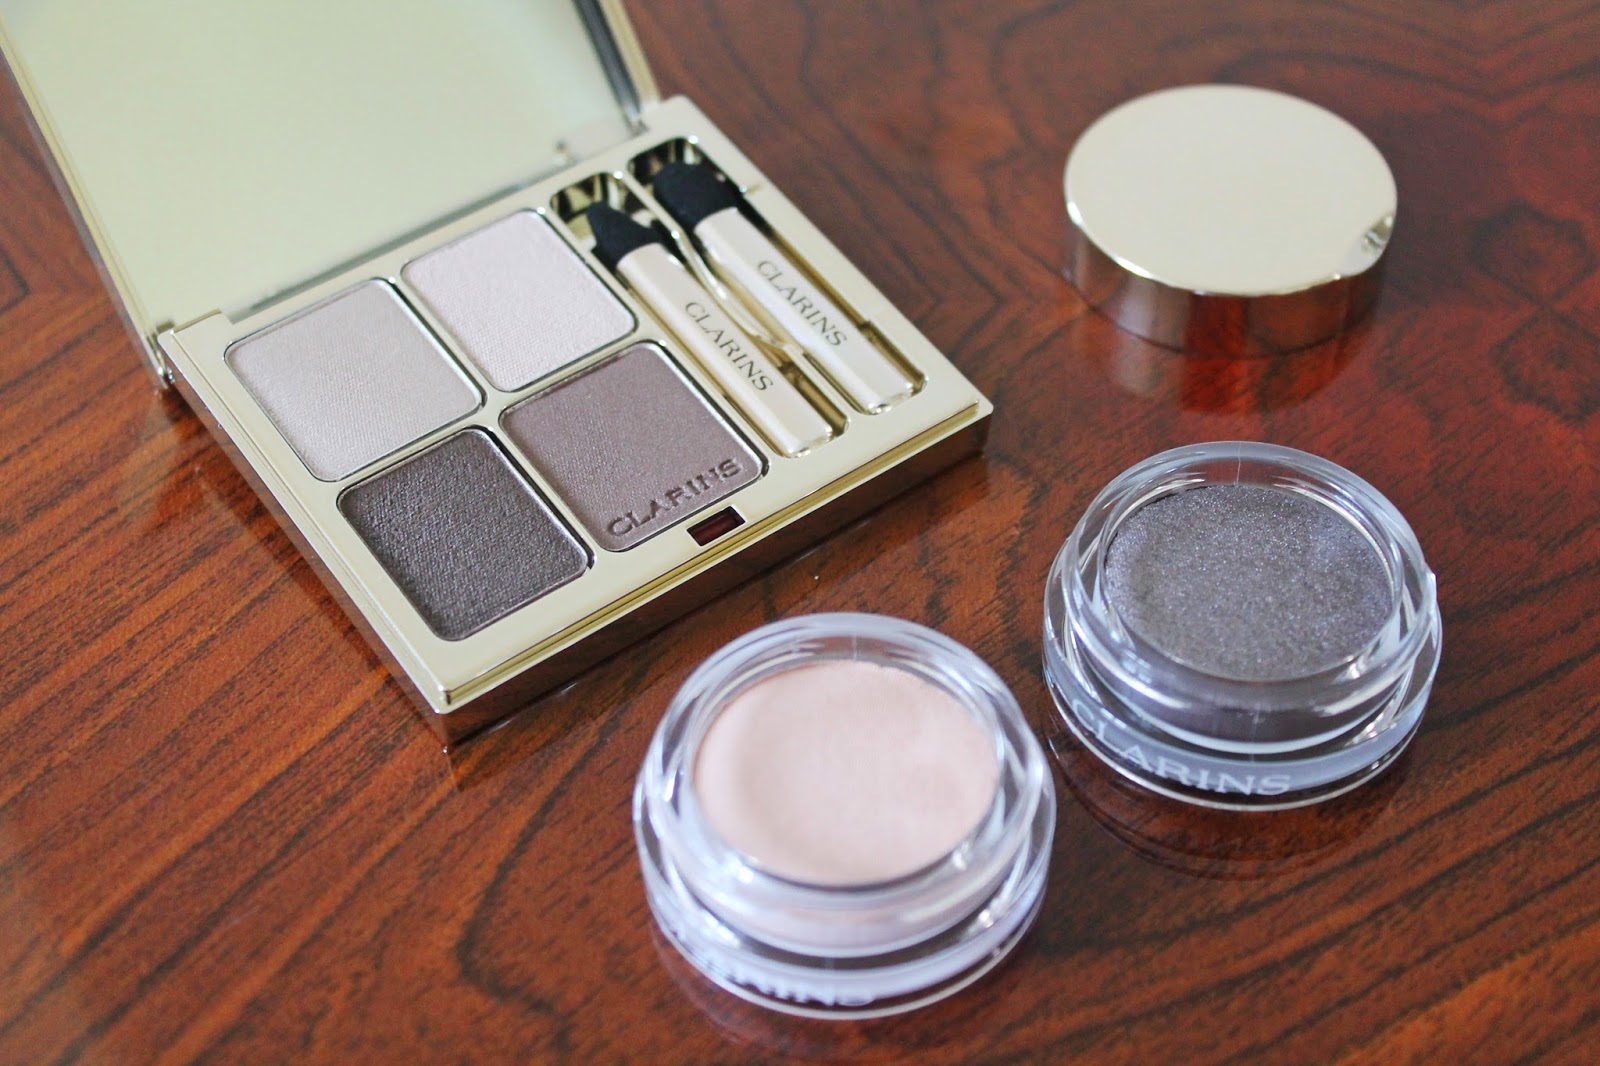 Clarins Ladylike Autumn Makeup Eyeshadow Collection Review - Aspiring Londoner